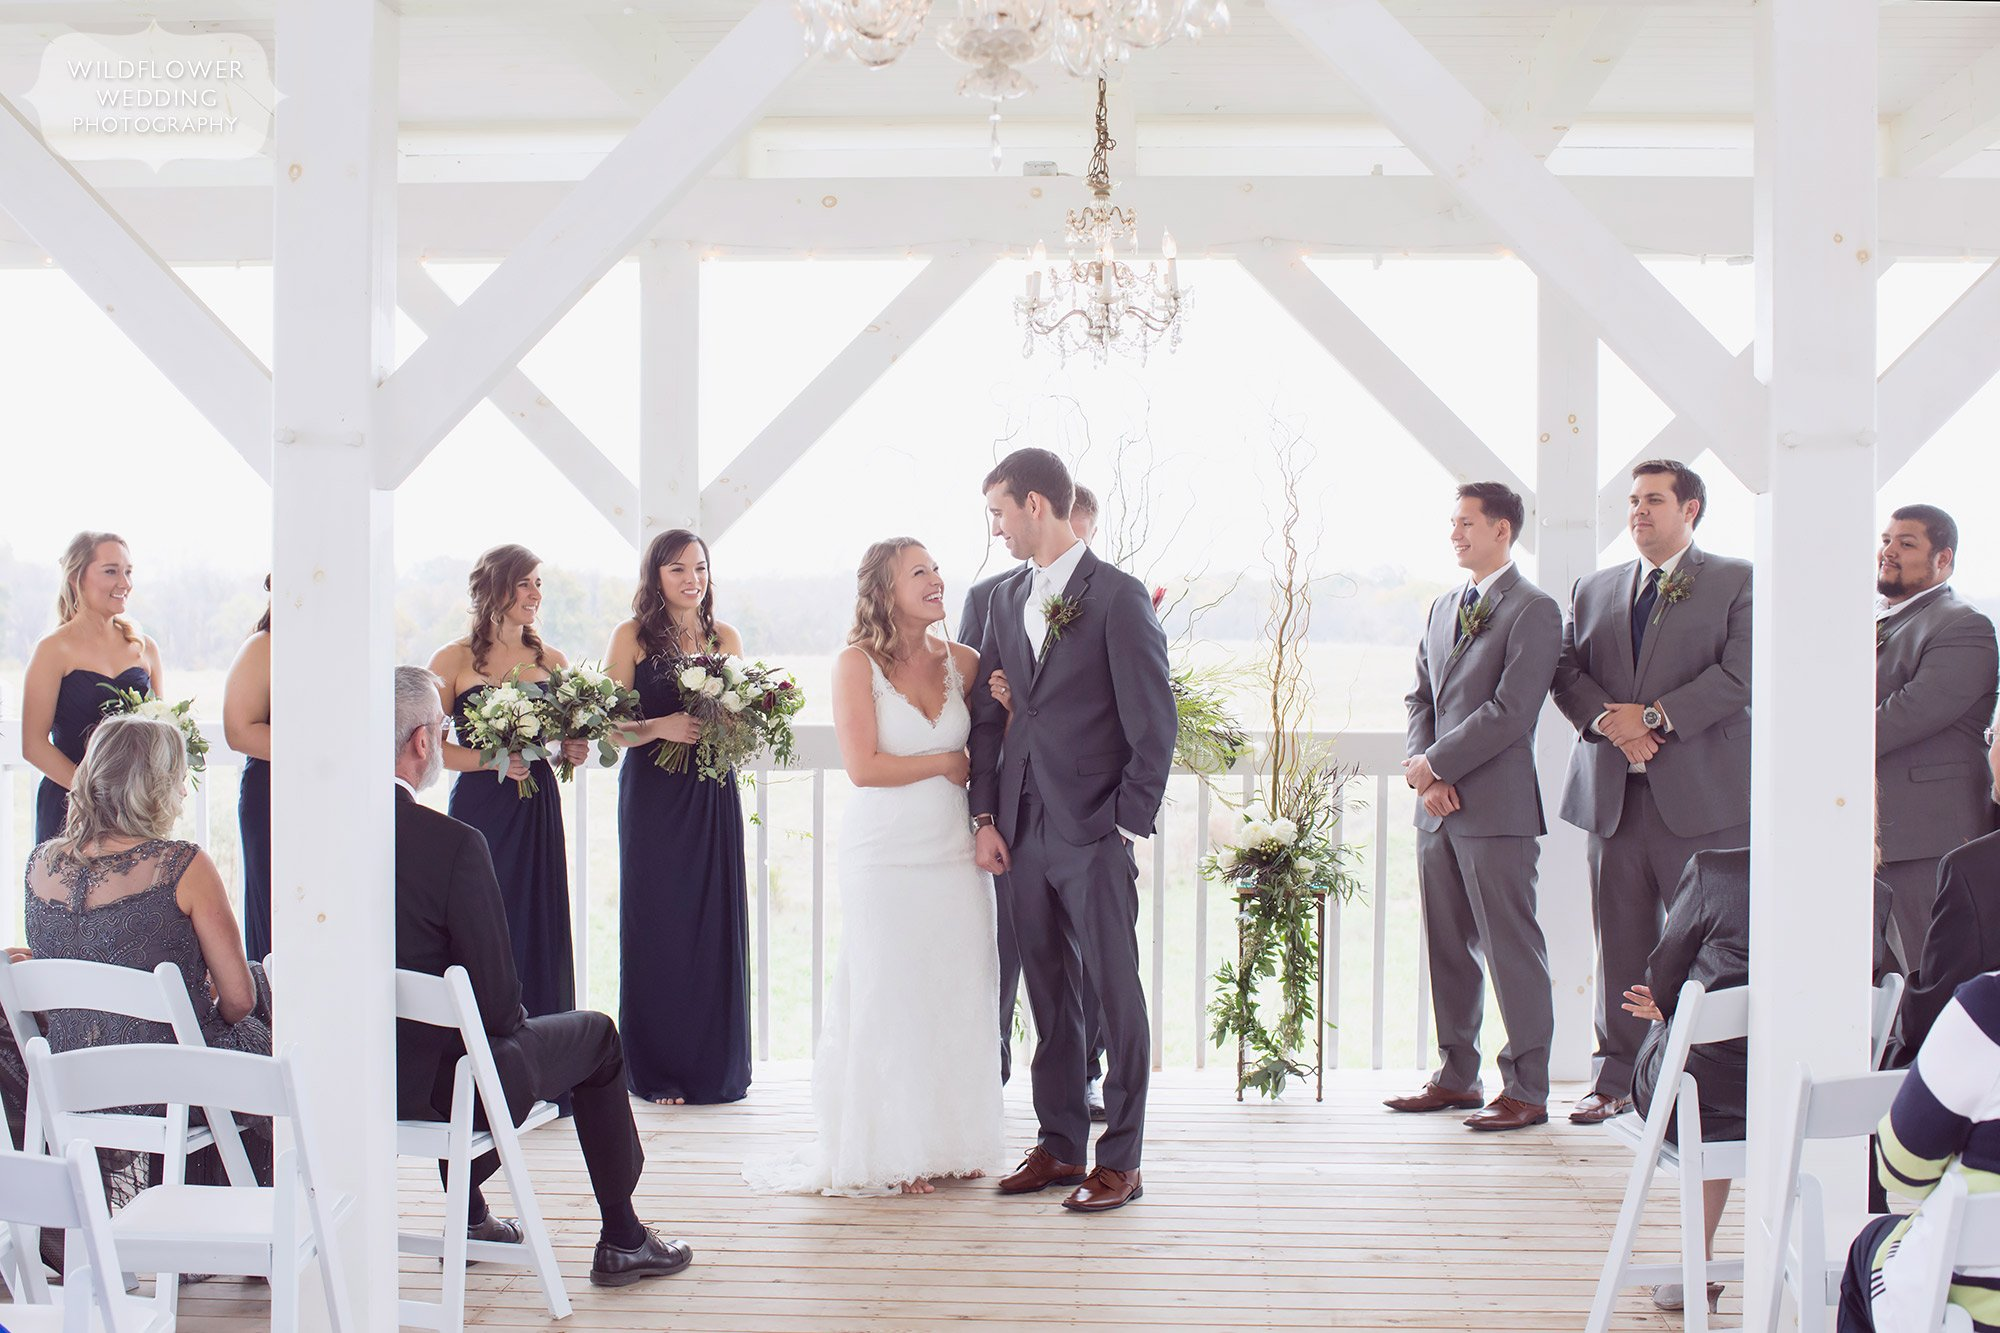 Bride and groom have a romantic wedding ceremony at this norwegian style barn wedding venue near Columbia, MO.